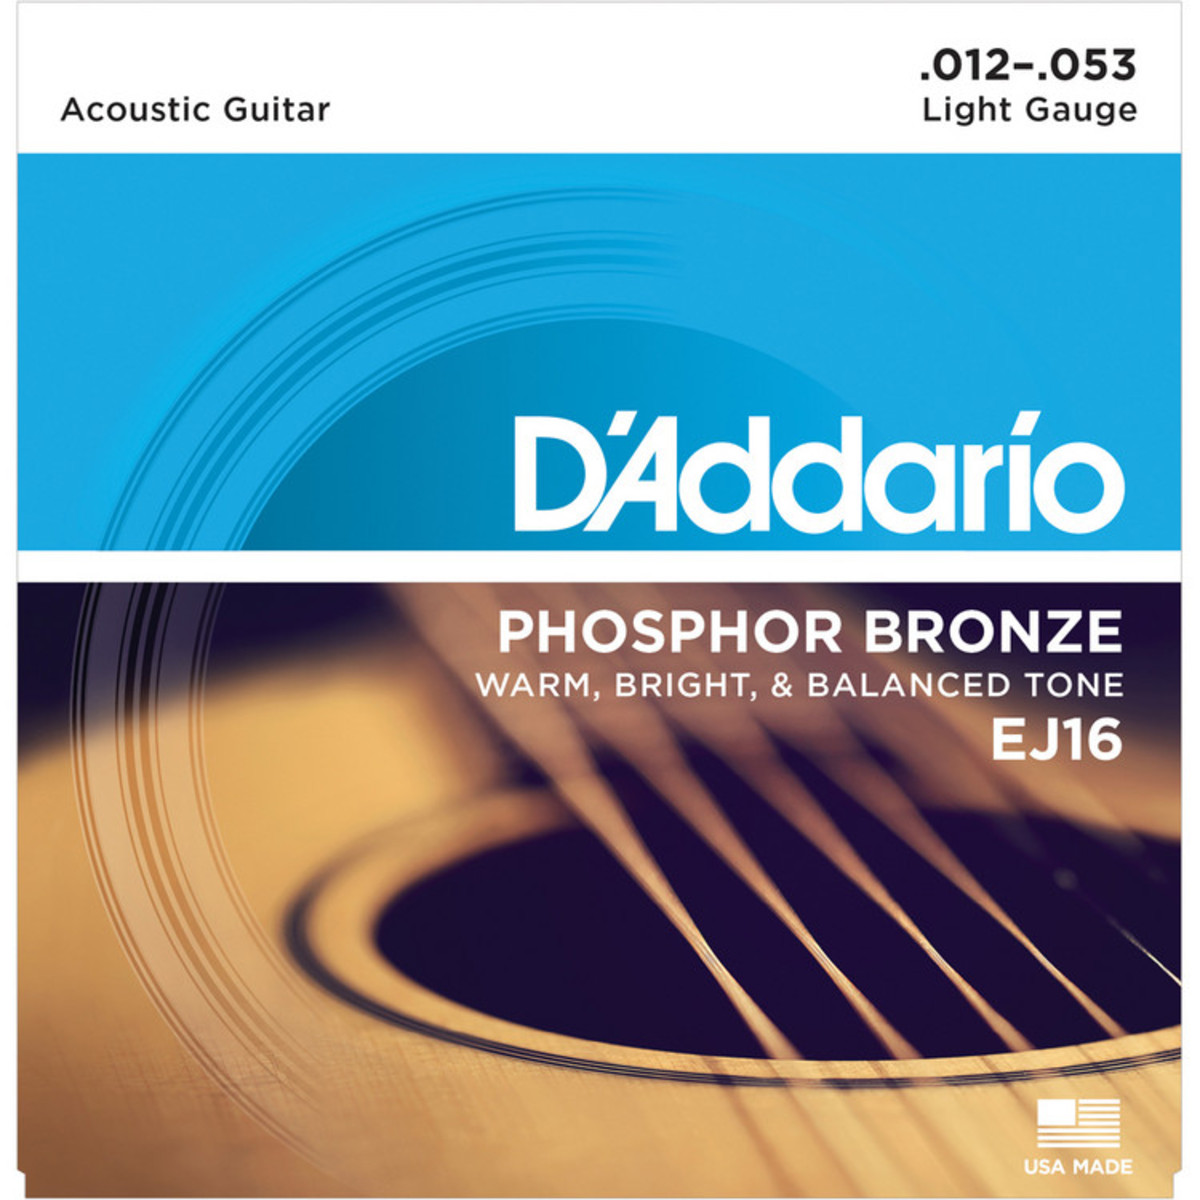 DAddario EJ16 Phosphor Bronze Guitar Strings 12-53